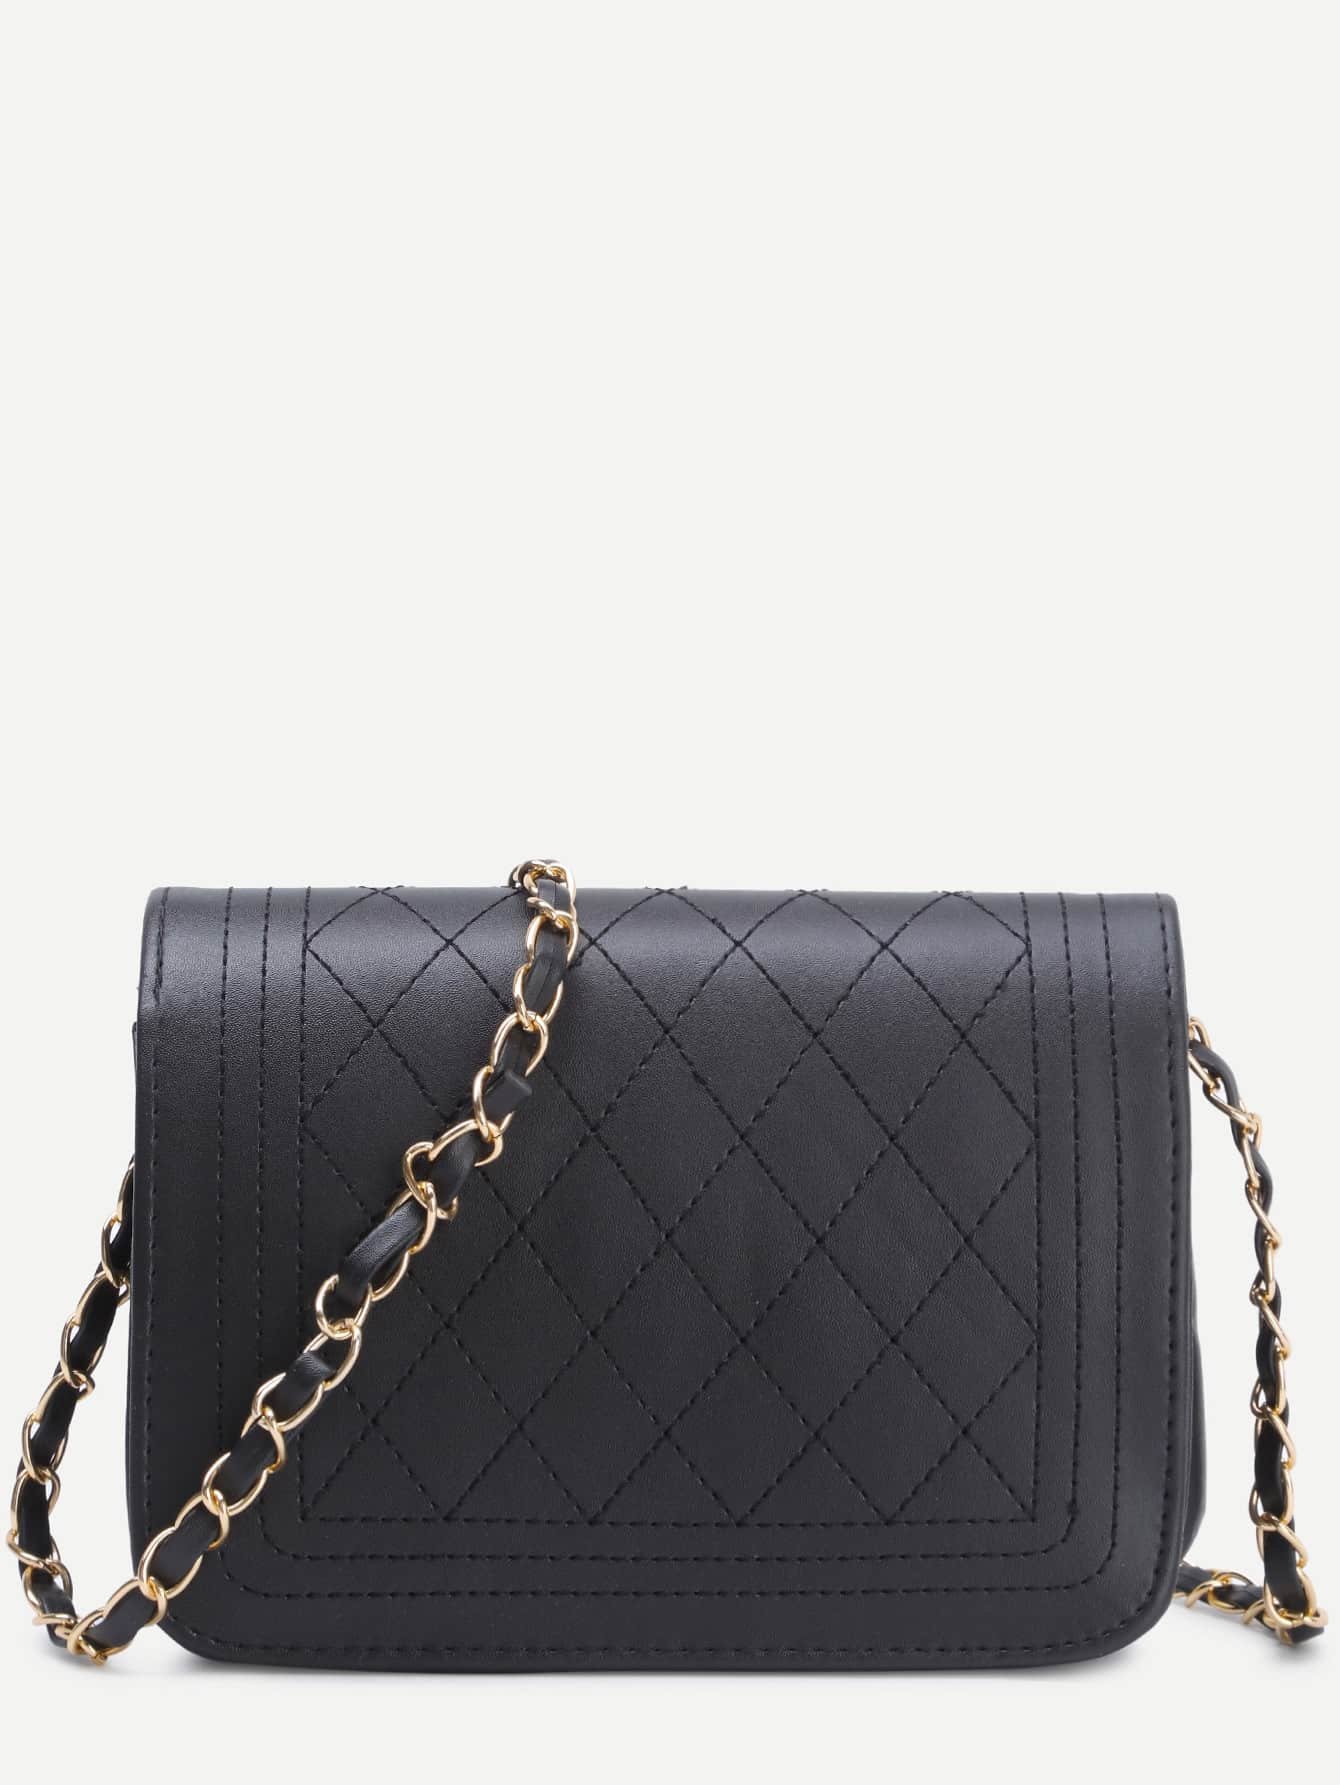 Black Faux Leather Quilted Flap Chain BagFor Women-romwe : leather quilted purse - Adamdwight.com